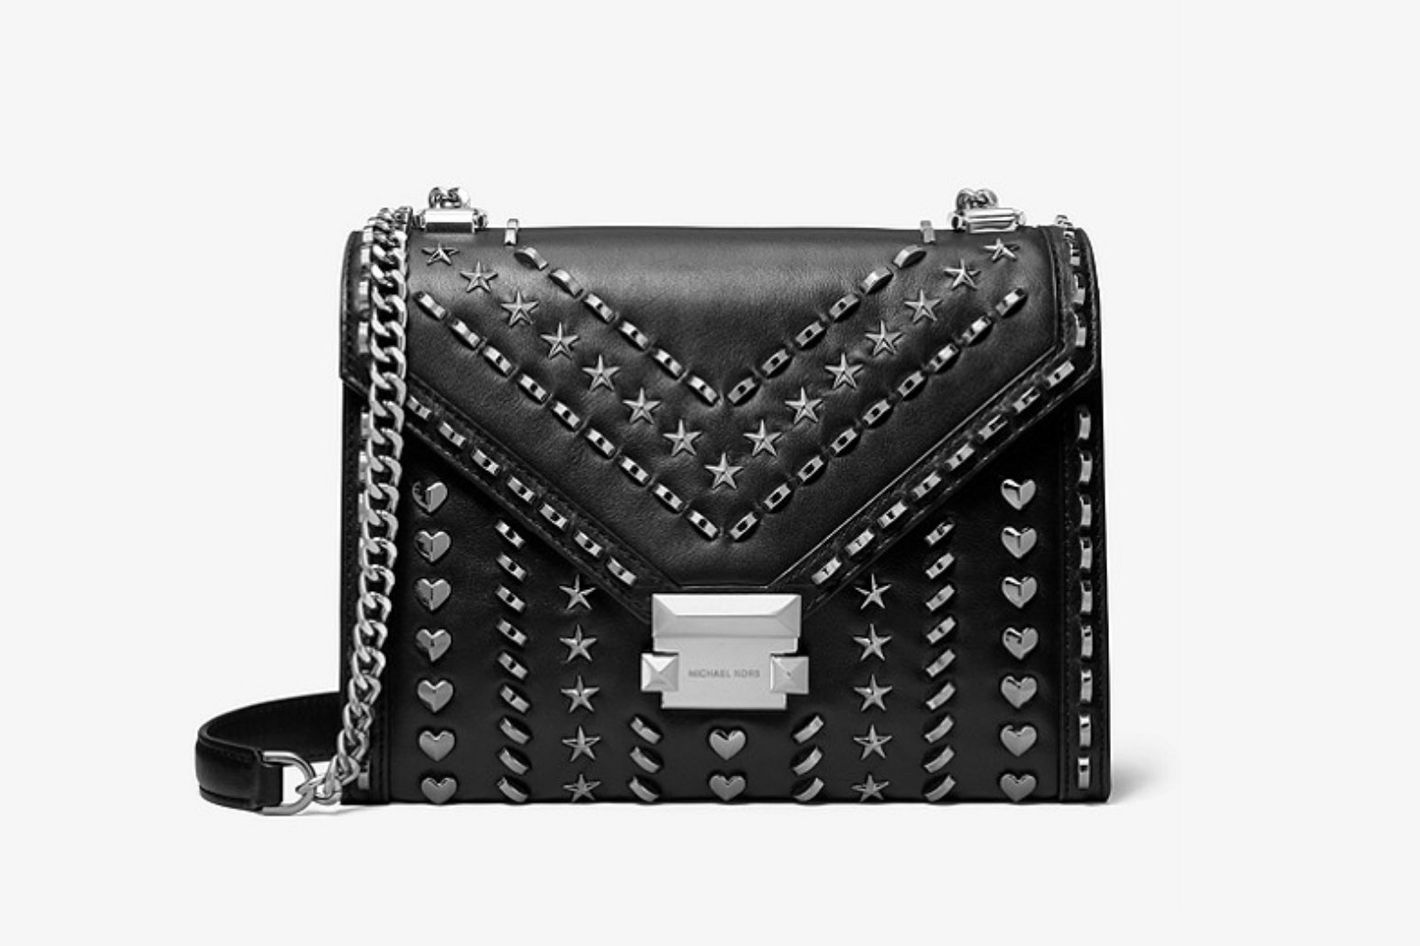 3f02ce49c764 Michael Kors x Yang Mi Whitney Large Studded Leather Convertible Shoulder  Bag